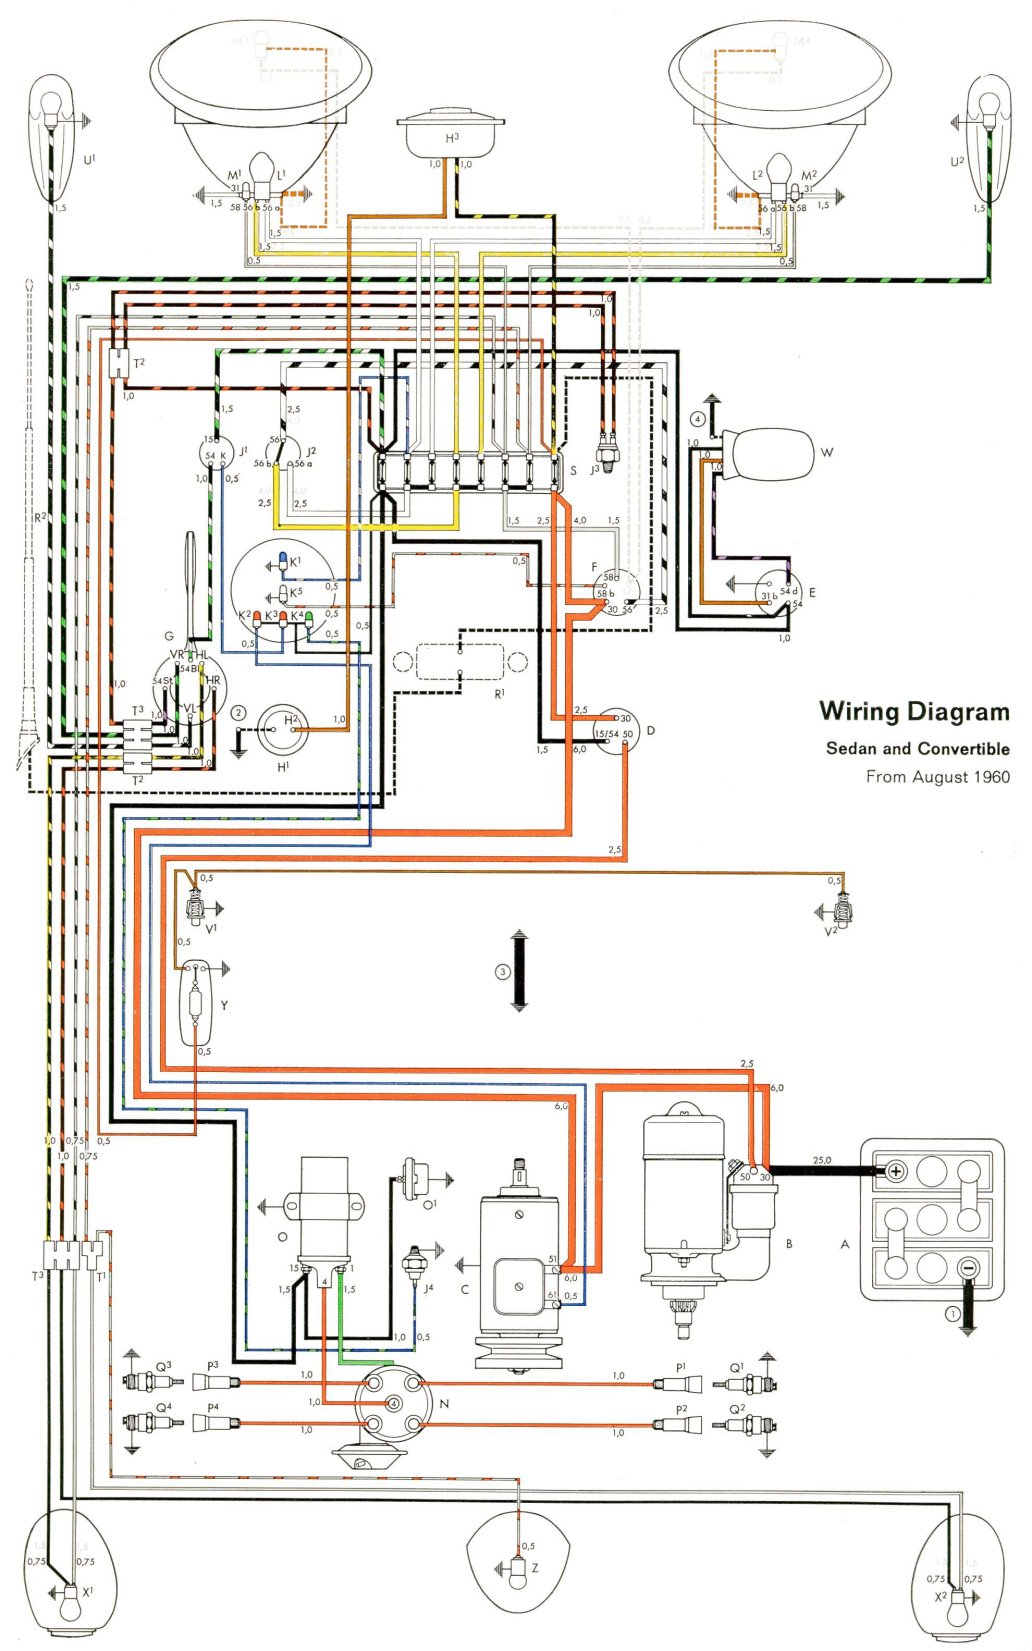 bug_61 1961 beetle wiring diagram thegoldenbug com 1957 vw bug wiring diagram at soozxer.org